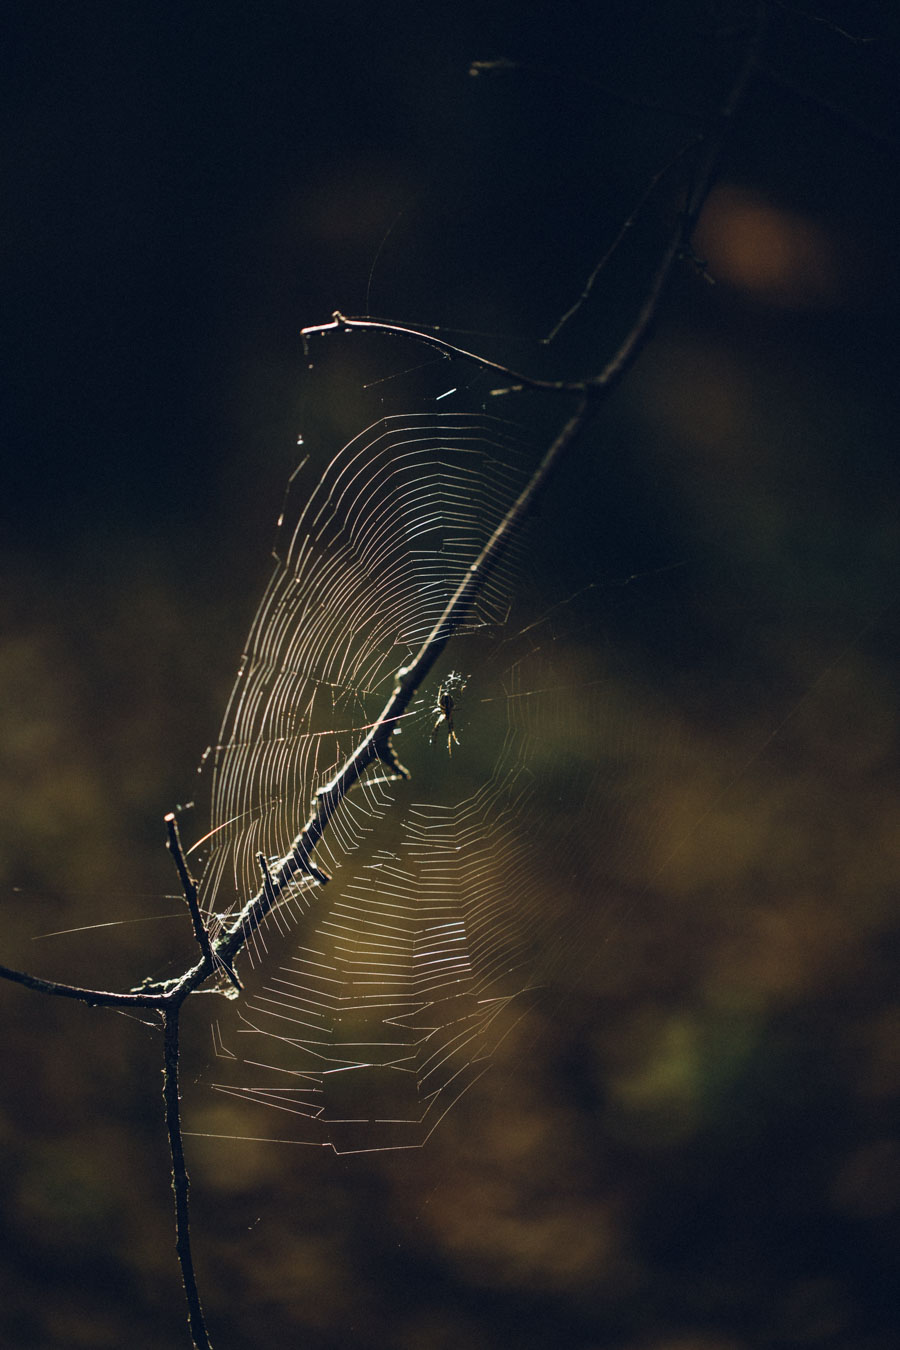 Spiders web in the afternoon sun